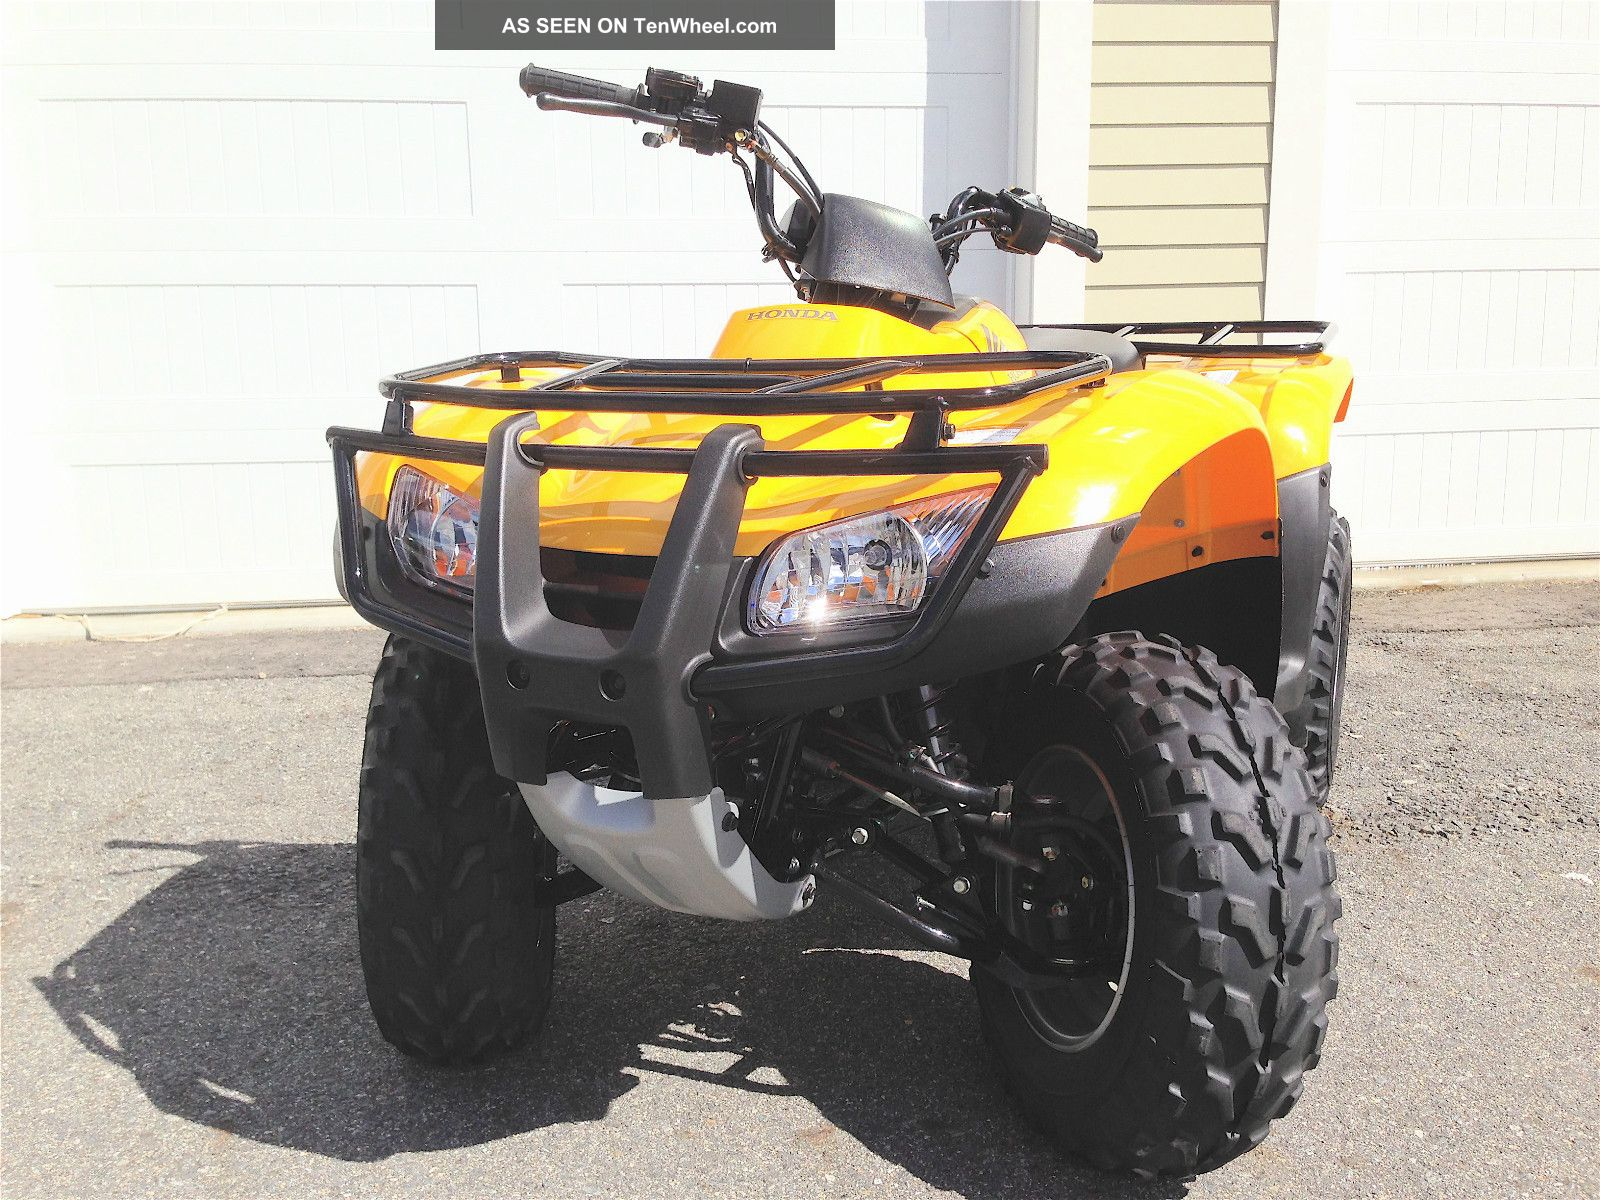 2007 yamaha grizzly 700 owners manual